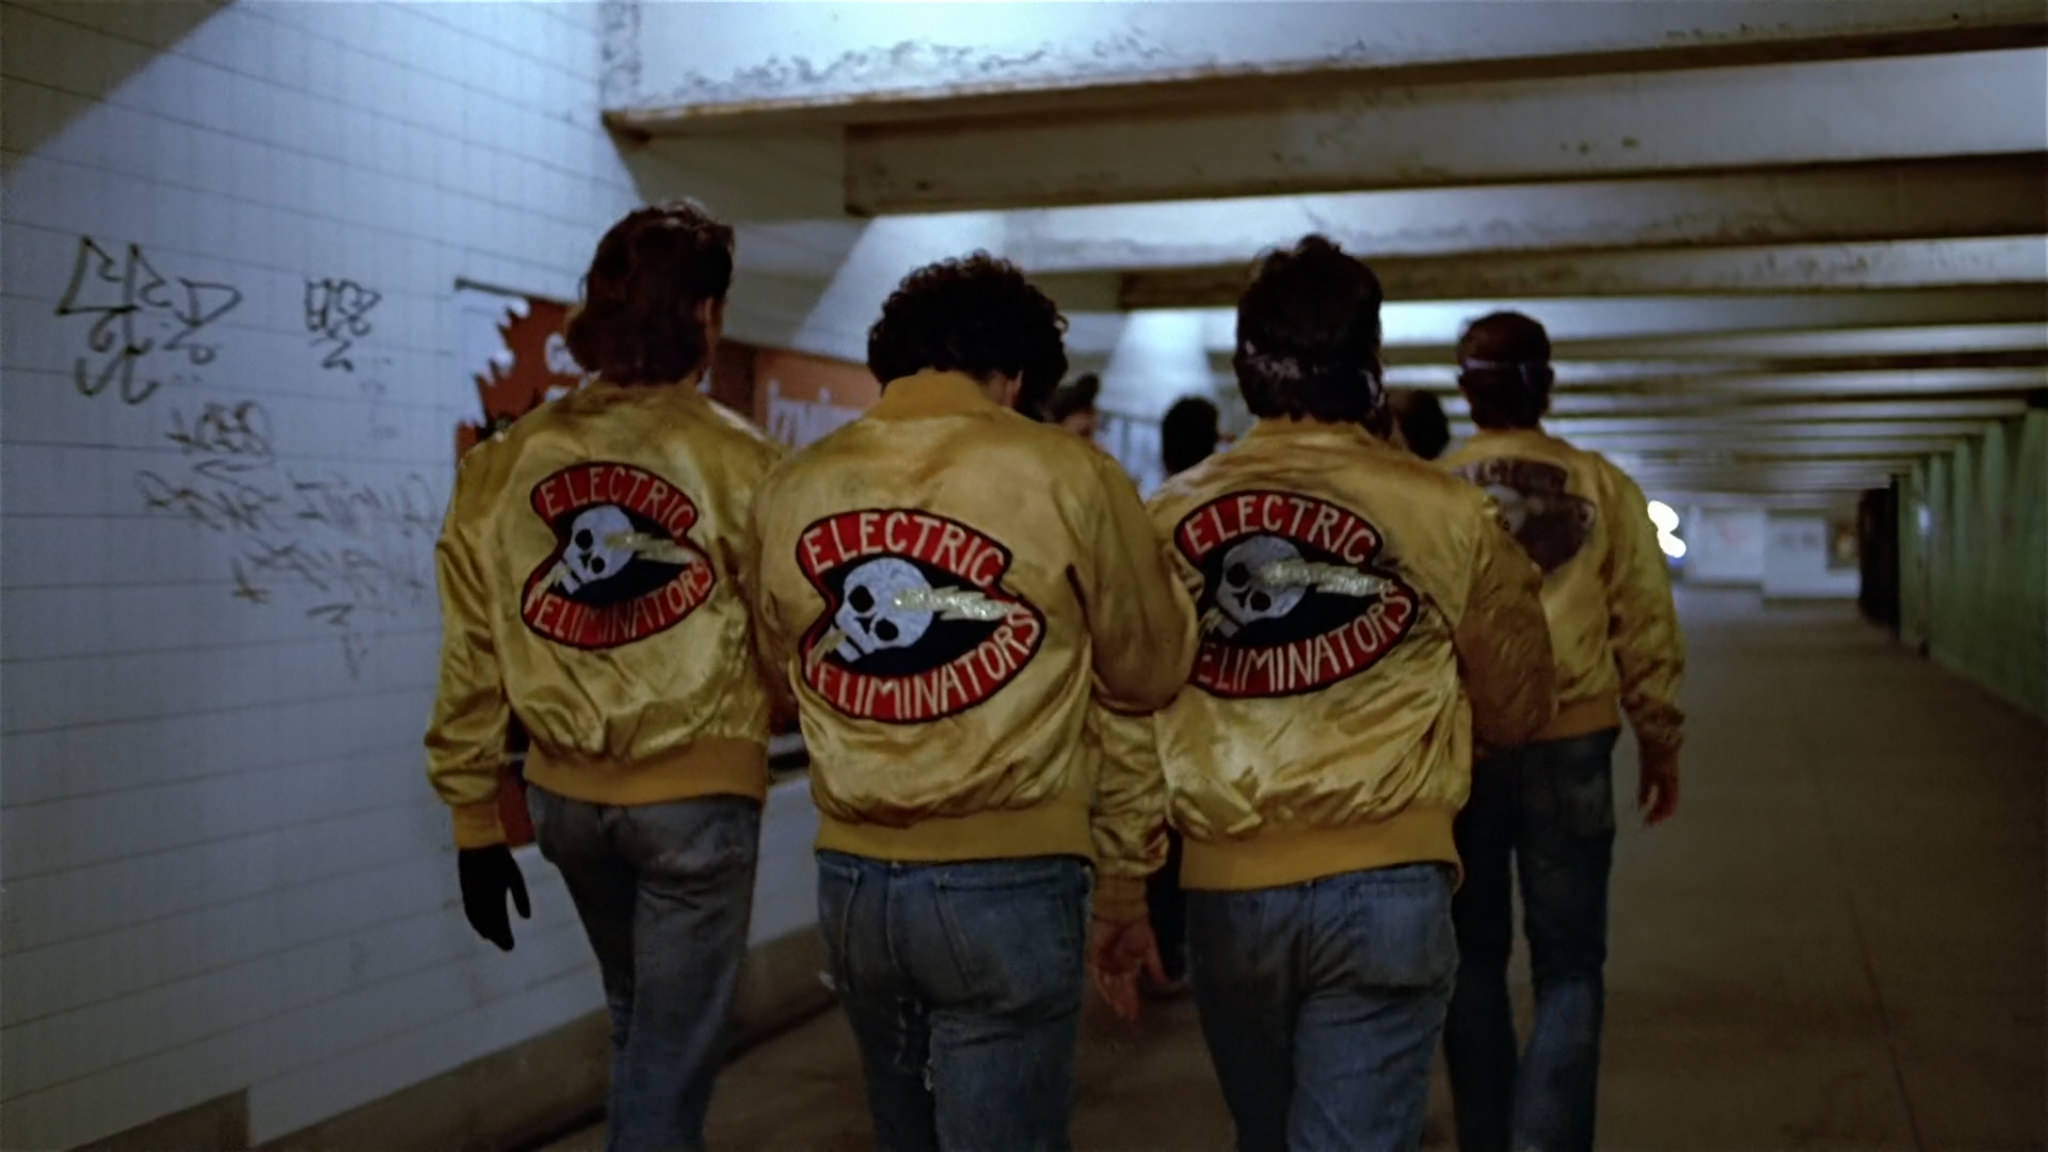 The Electric Eliminators - The Warriors Gang